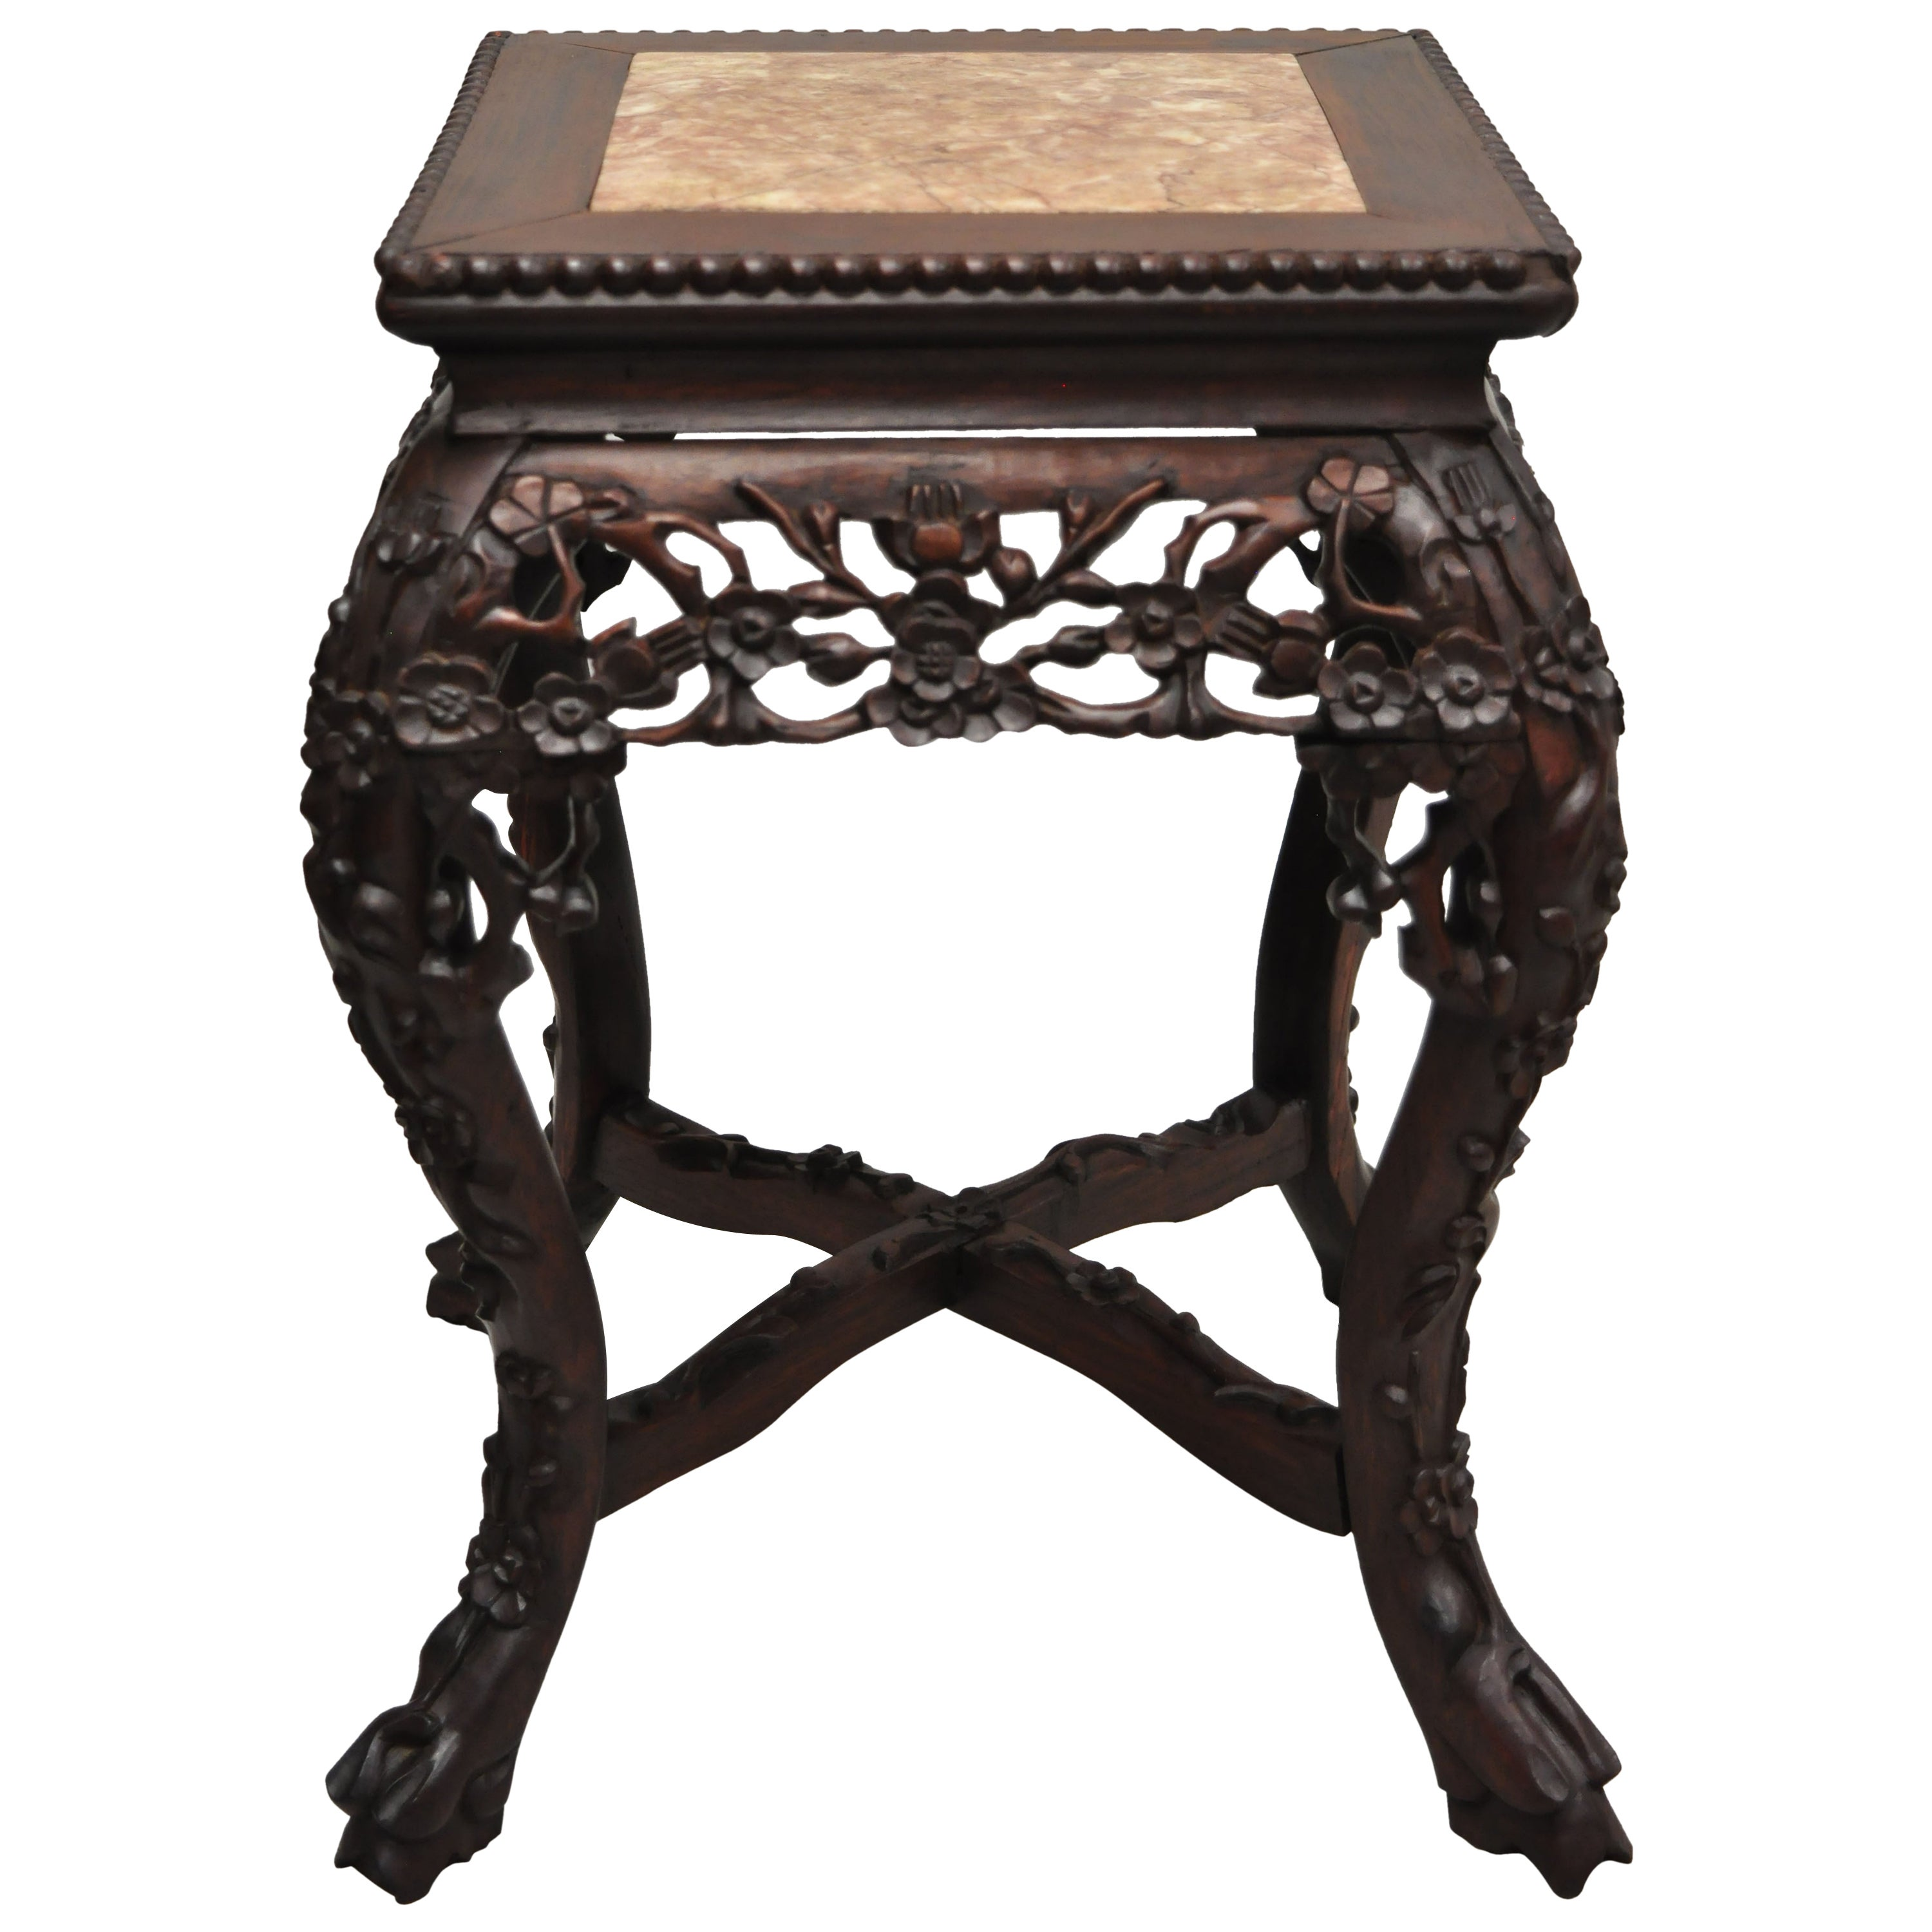 Antique Carved Hardwood Rosewood Marble-Top Chinese Pedestal Table Plant Stand D